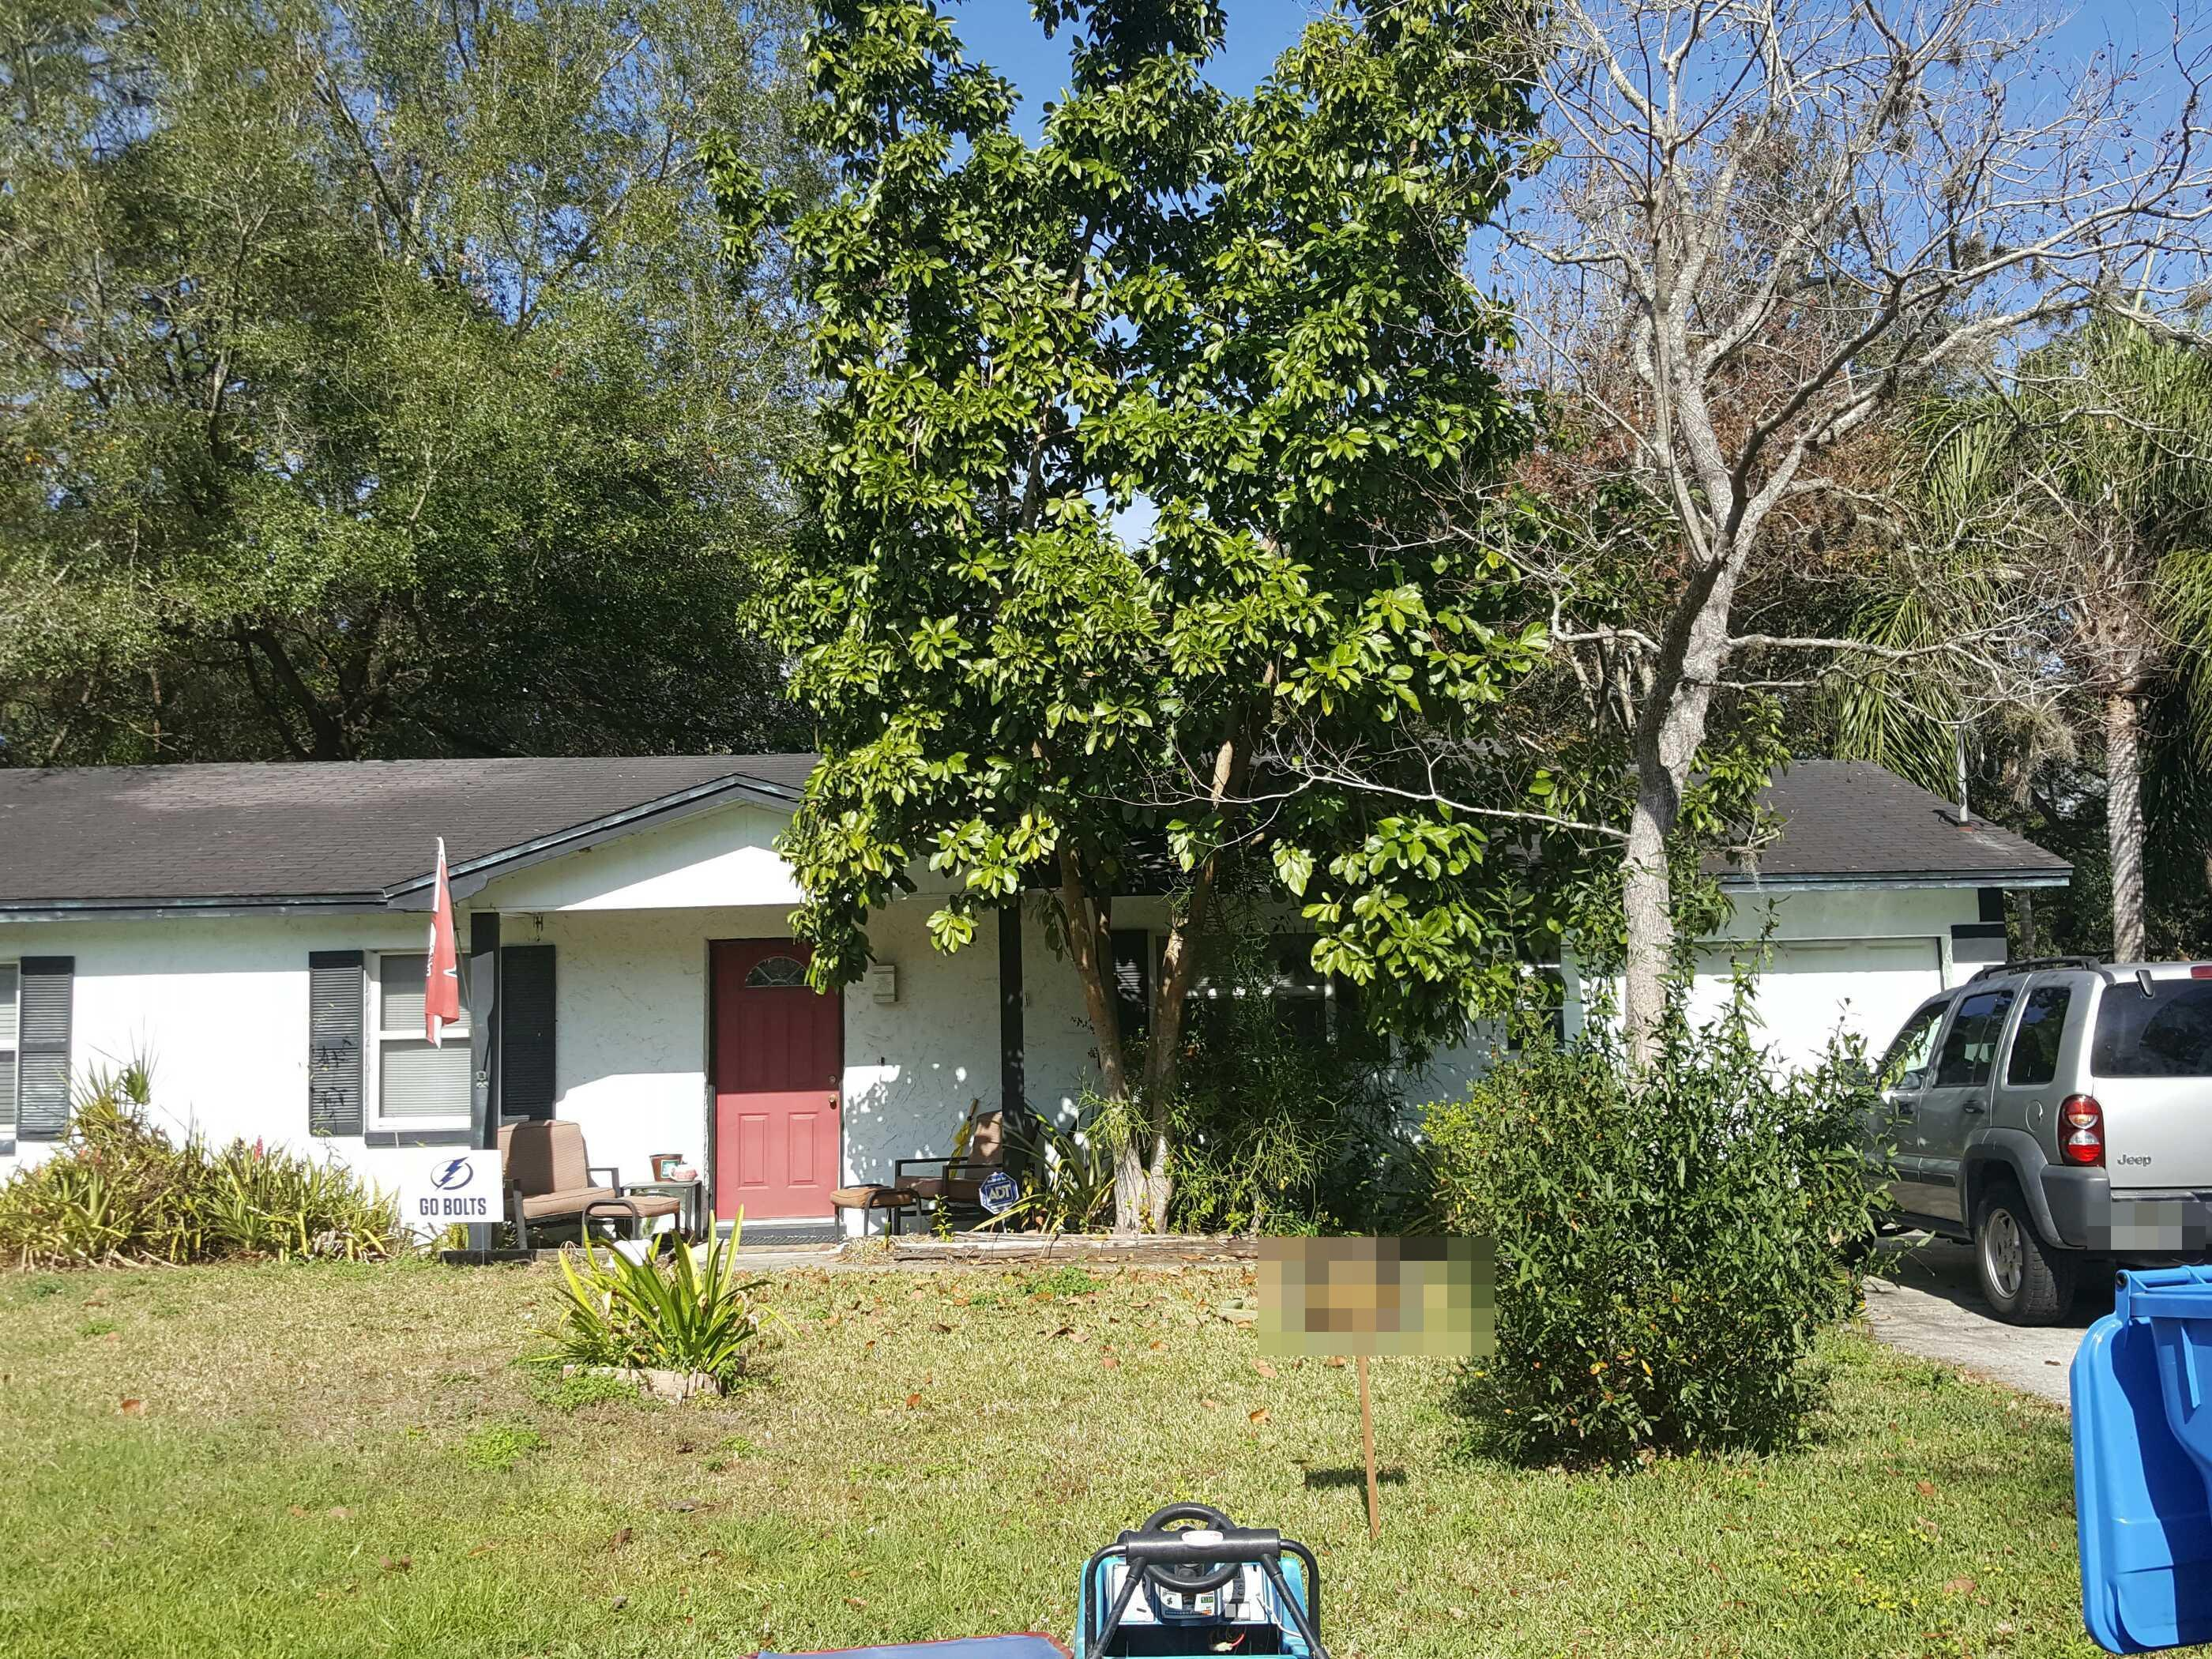 1916 May St, Brandon, FL 33510